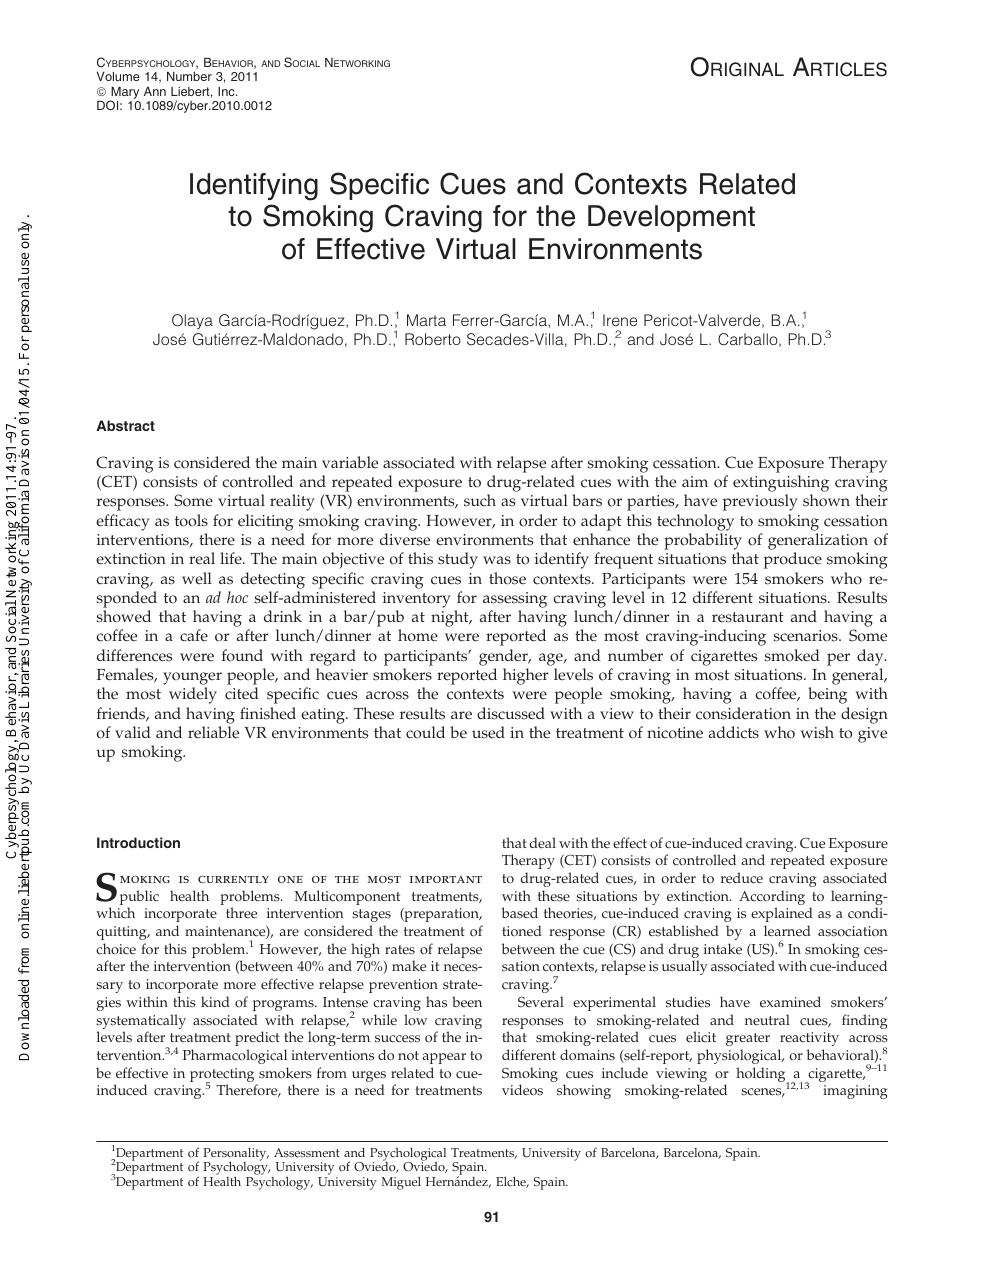 Identifying Specific Cues and Contexts Related to Smoking